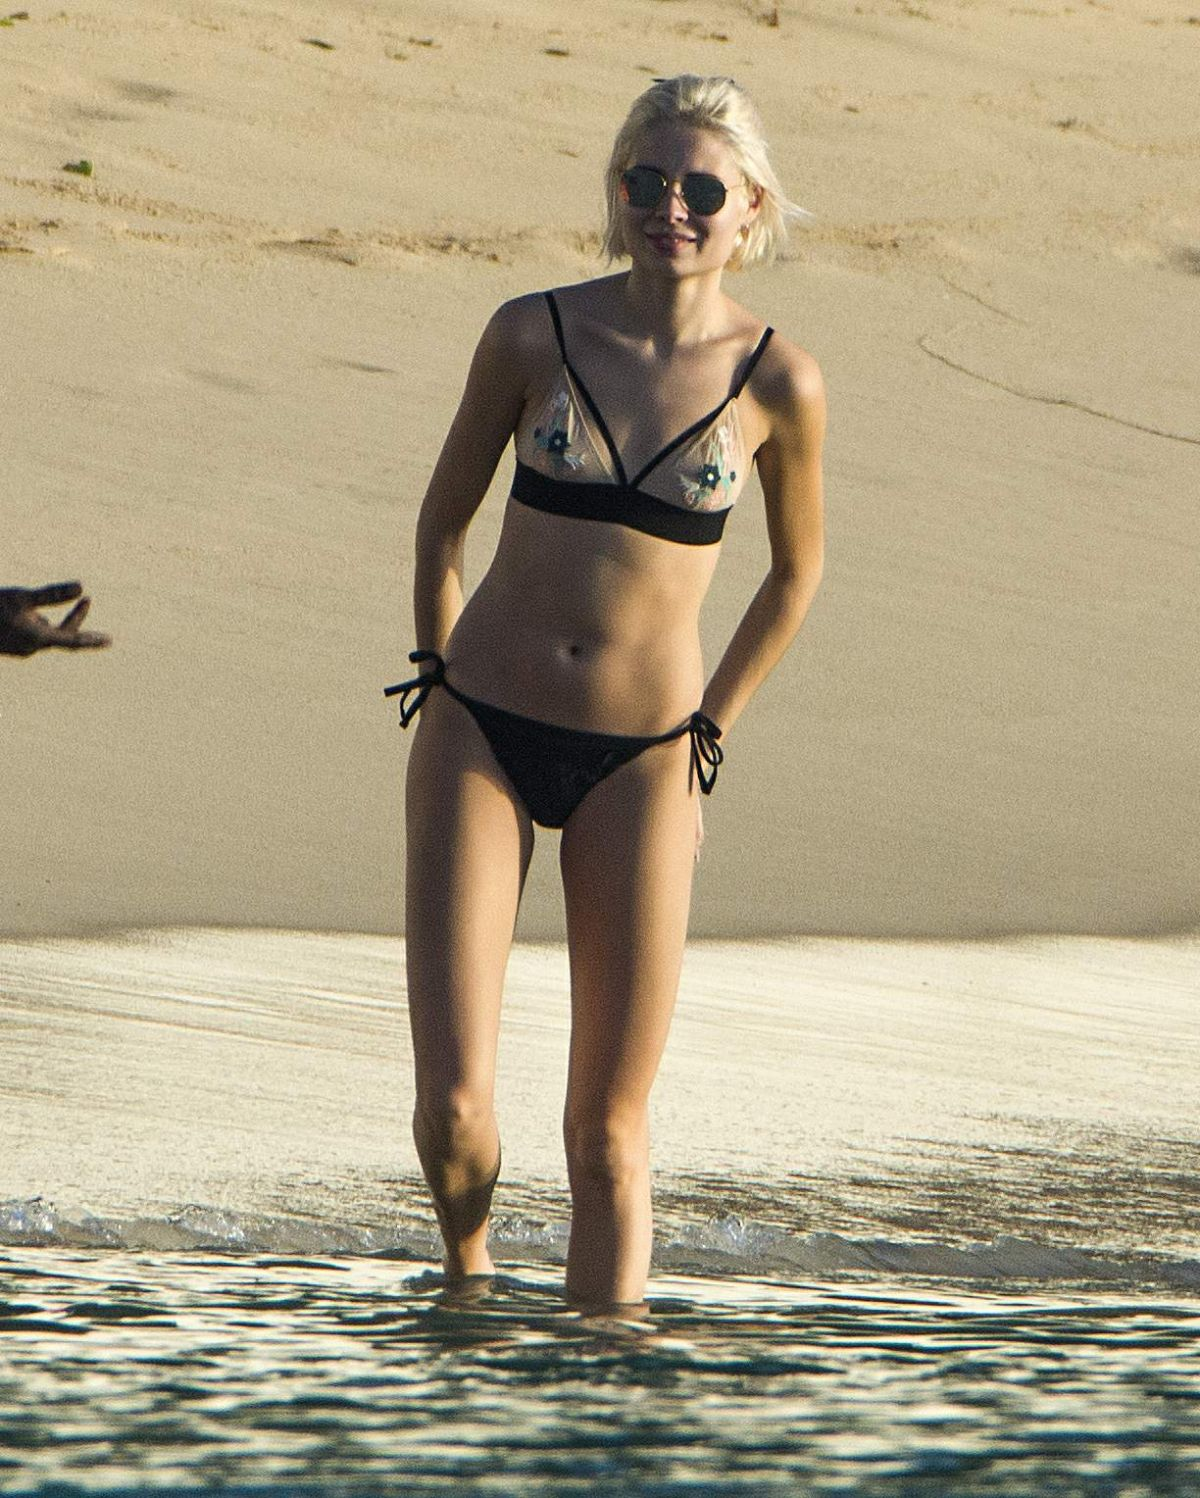 Nina Nesbitt On holiday in Barbados   nina-nesbitt-on-holiday-in-barbados-_2